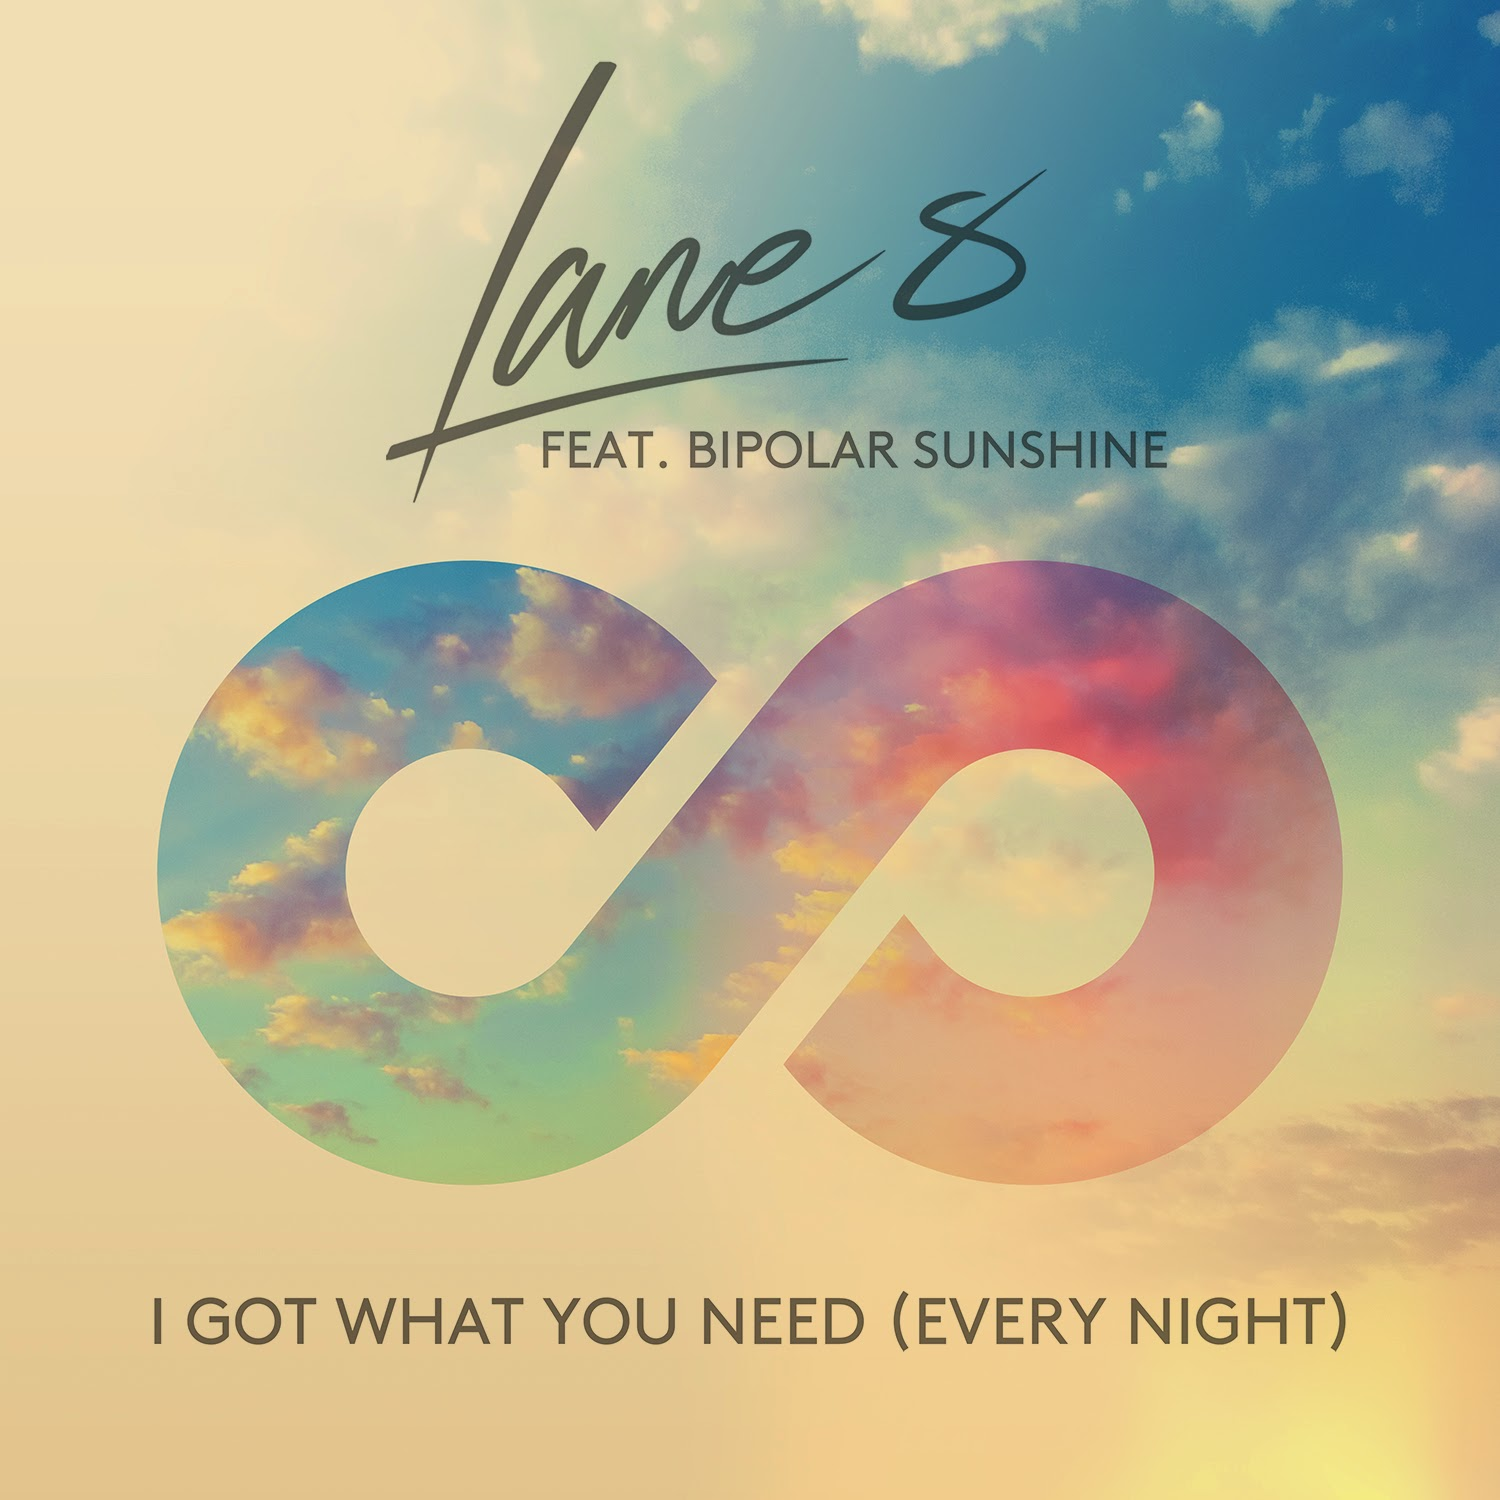 Lane 8 Feat. Bipolar Sunshine - I Got What You Need (Every Night) (Coming Soon)